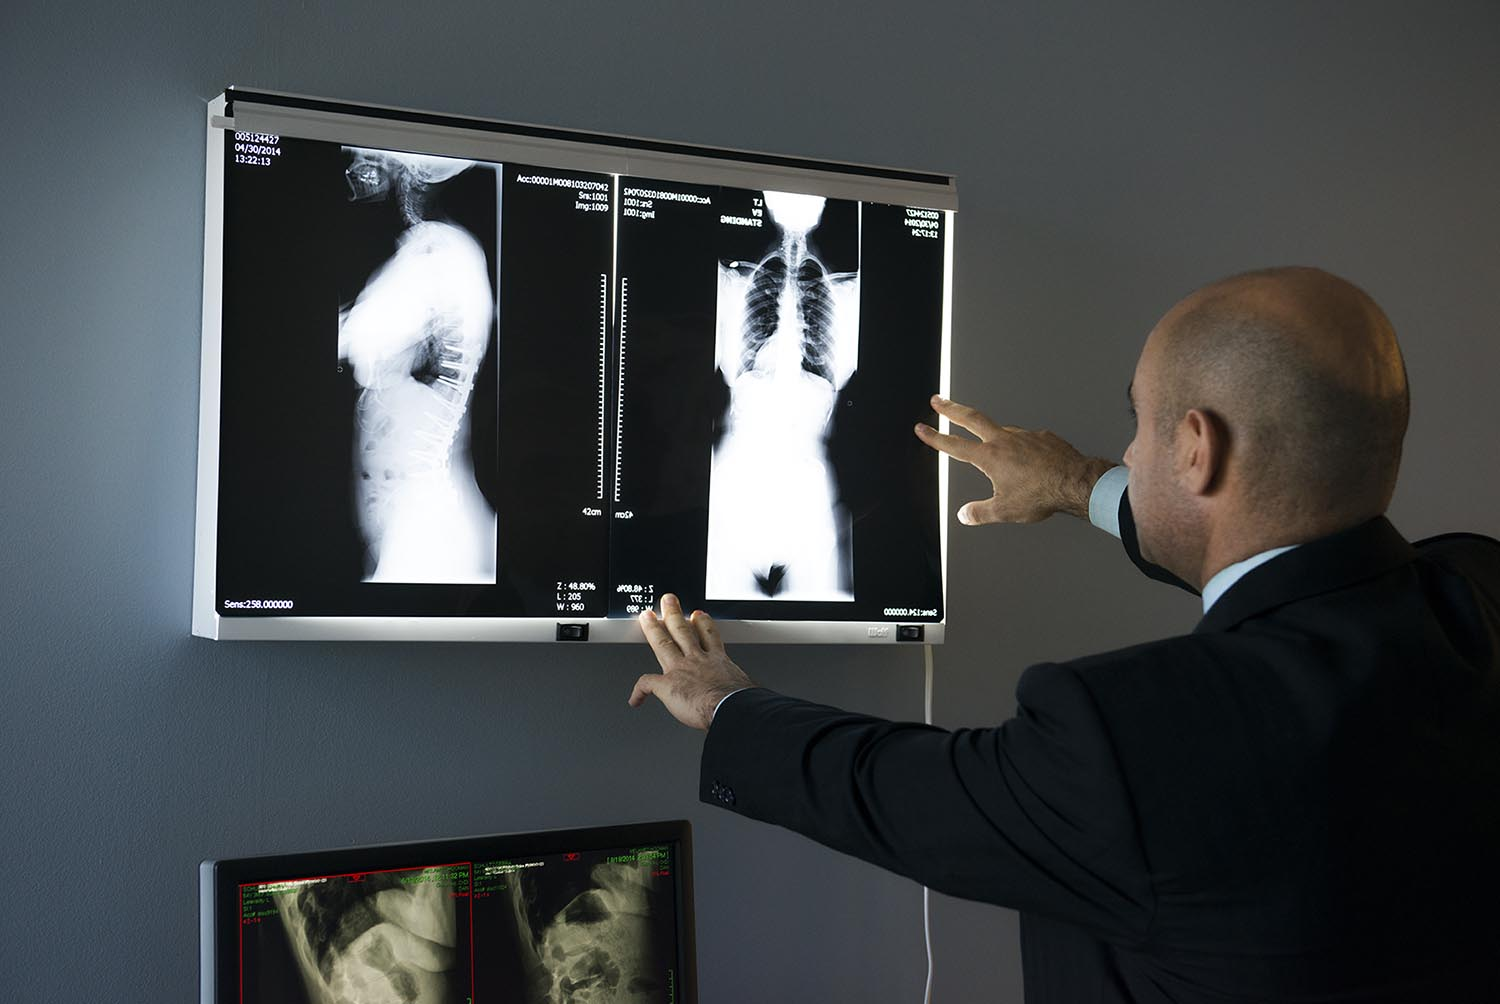 Scoliosis Surgery Los Angeles Offered by Top Spine Surgeon